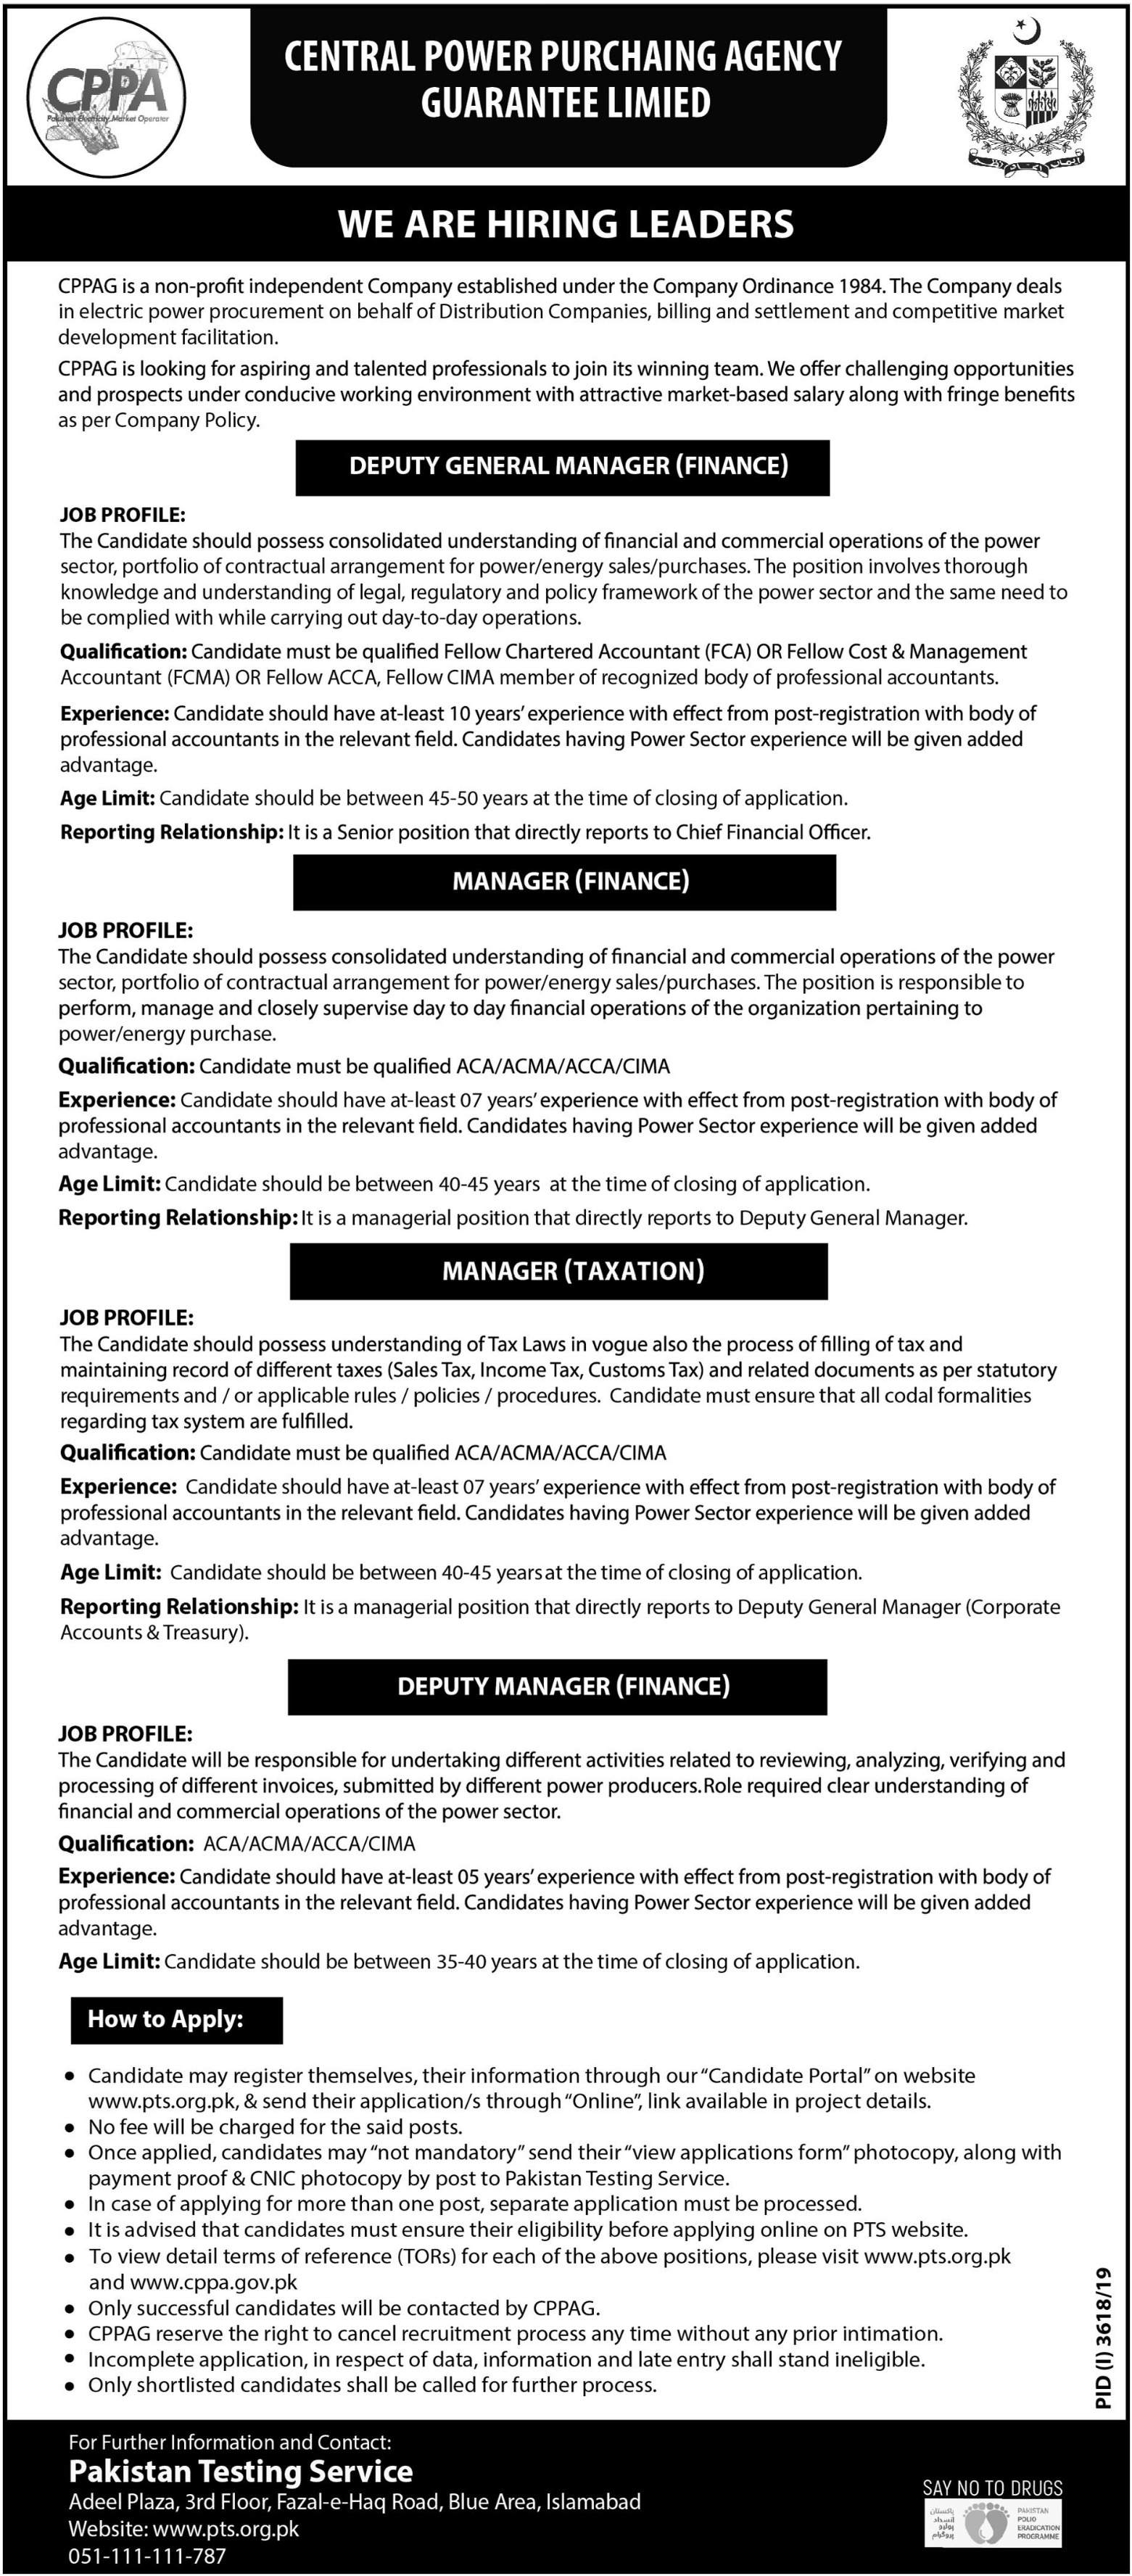 CPPA Wapda Jobs 2020 Central Power Purchasing Agency Guarantee Limited